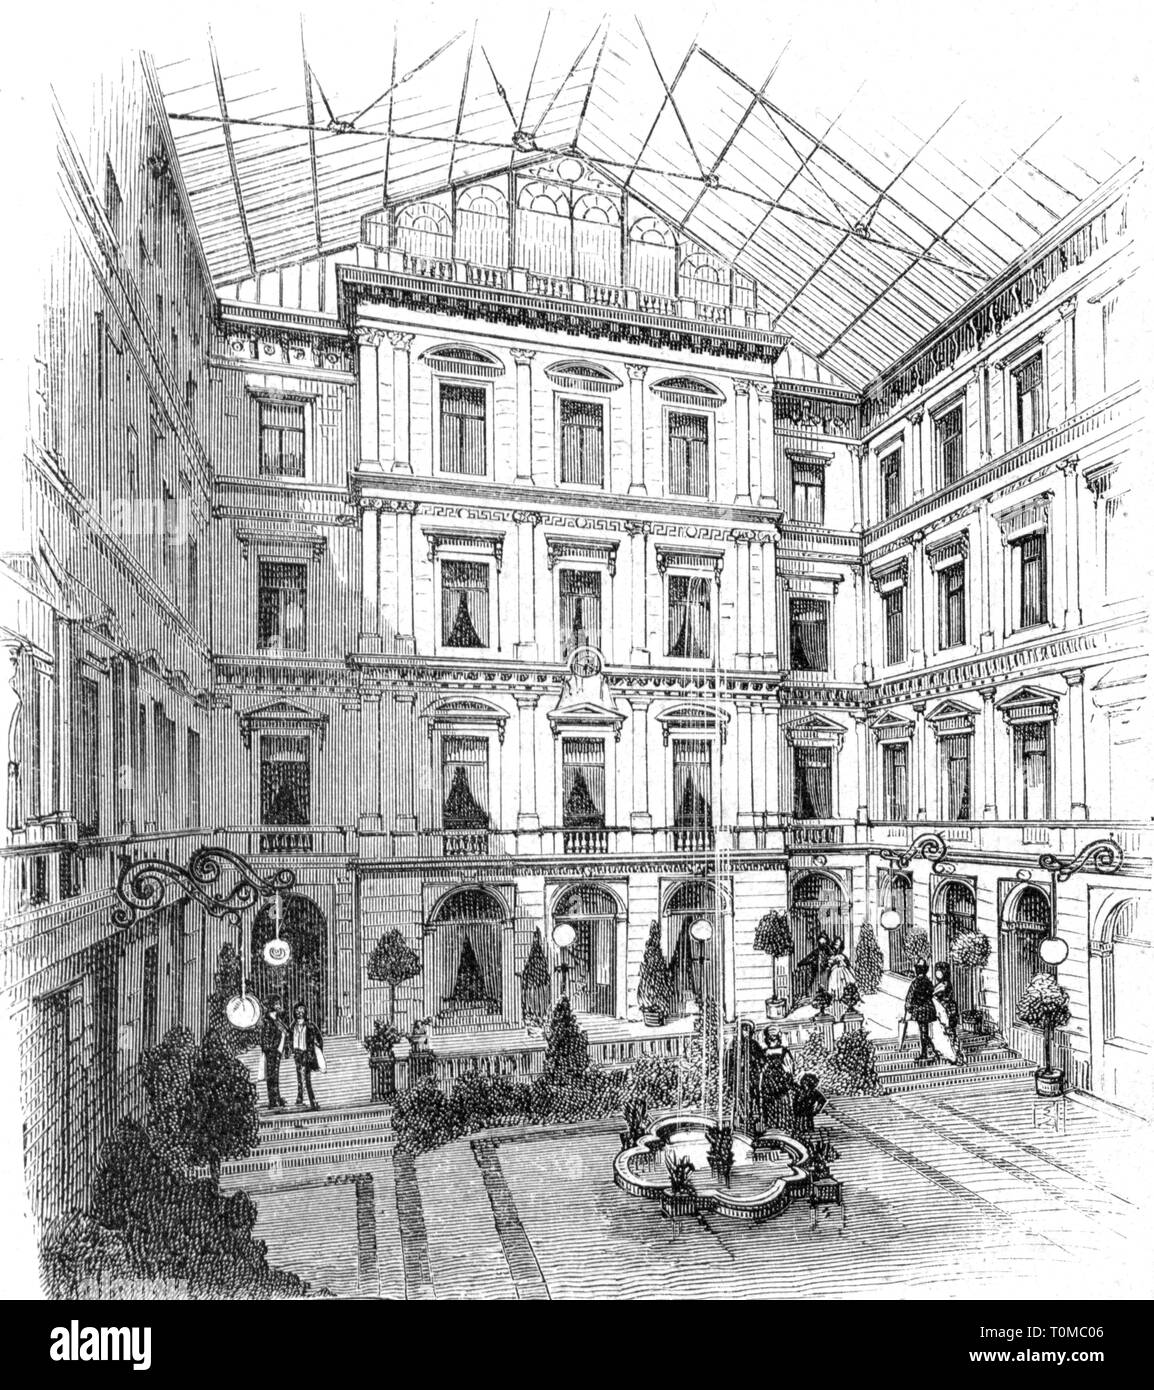 gastronomy, tavern, inn 'Zu den Drei Mohren', Augsburg, interior view, air well, wood engraving after drawing by G. Sundblad, 'Die Gartenlaube', 1878, Additional-Rights-Clearance-Info-Not-Available - Stock Image